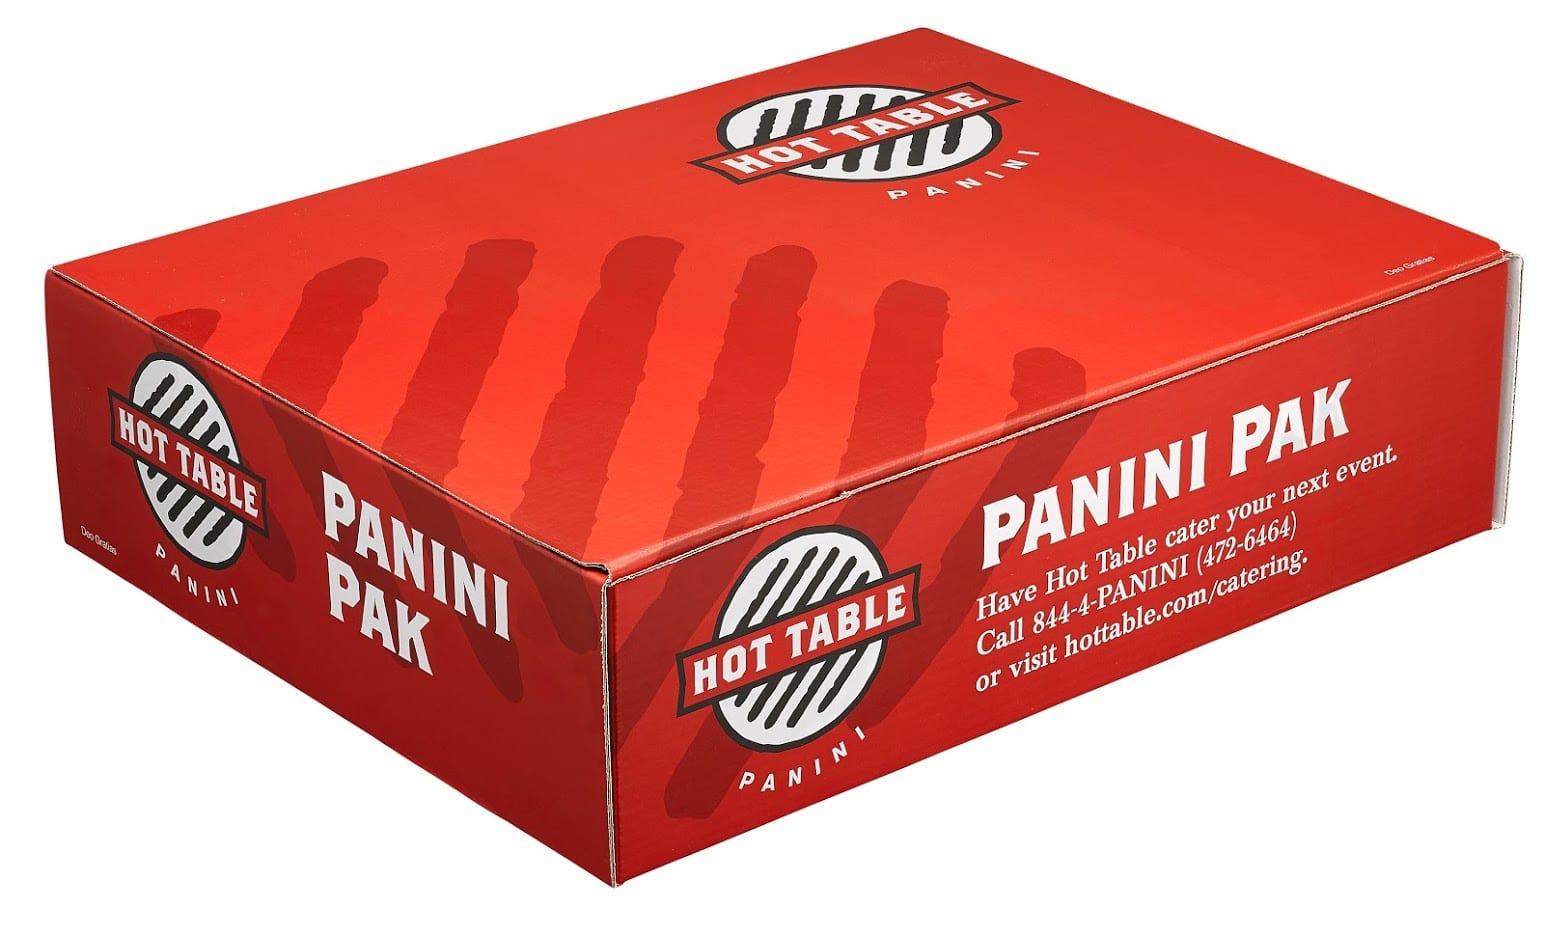 Hot Table Catering Panini Box